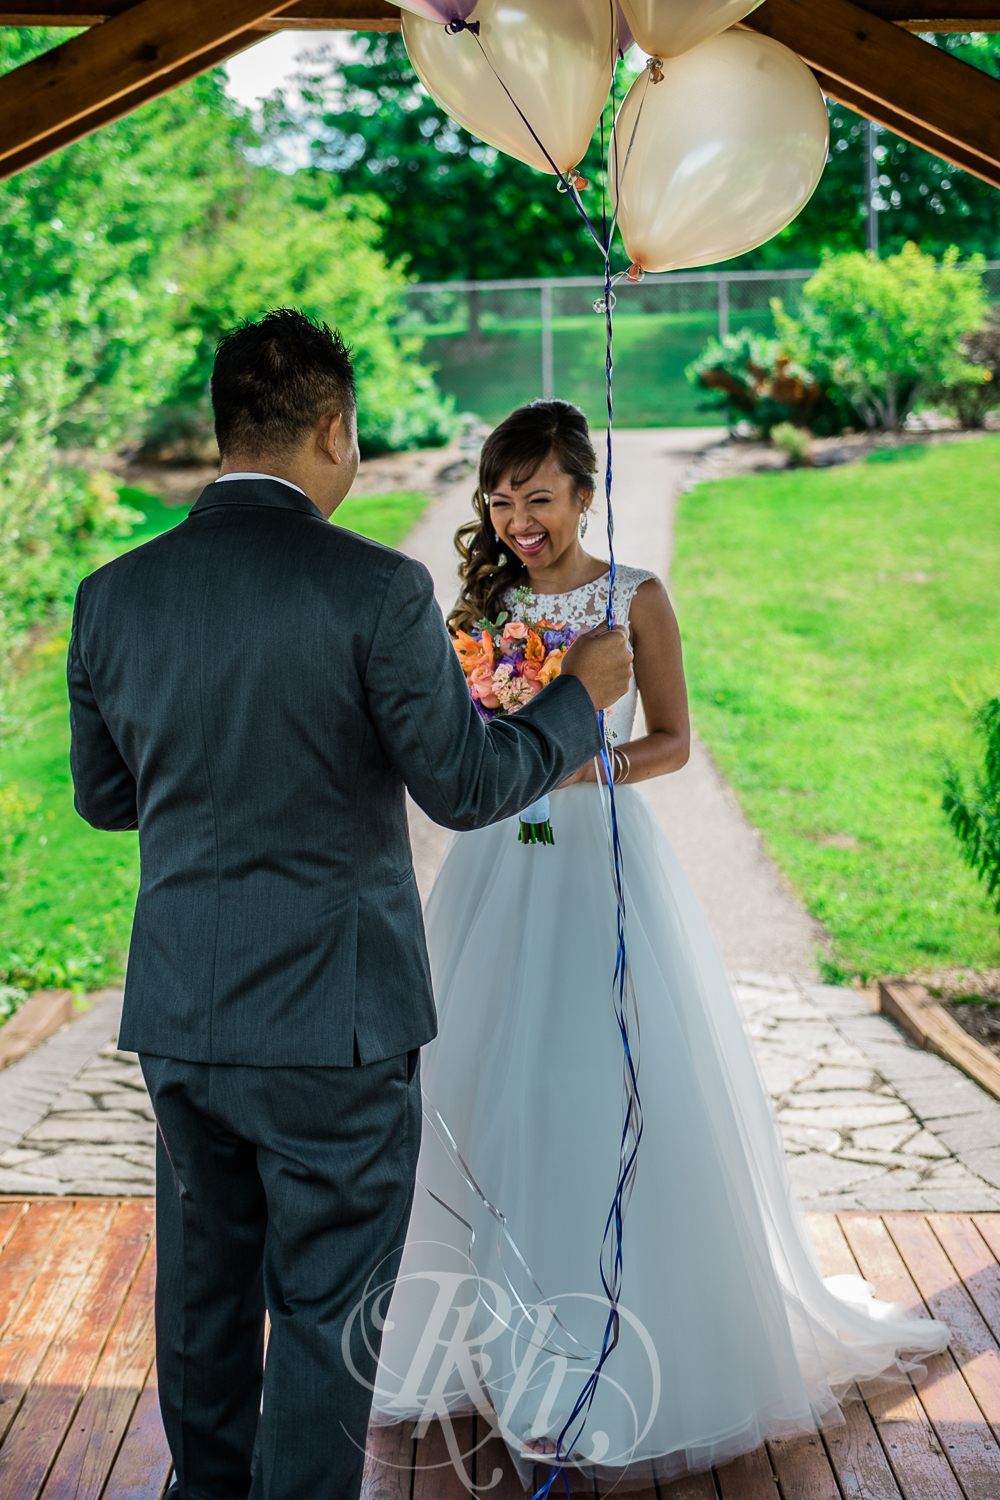 Thuy & Allen - MN Wedding Photography - Millenium Gardens -  RKH Images - Blog - First Look -3.jpg